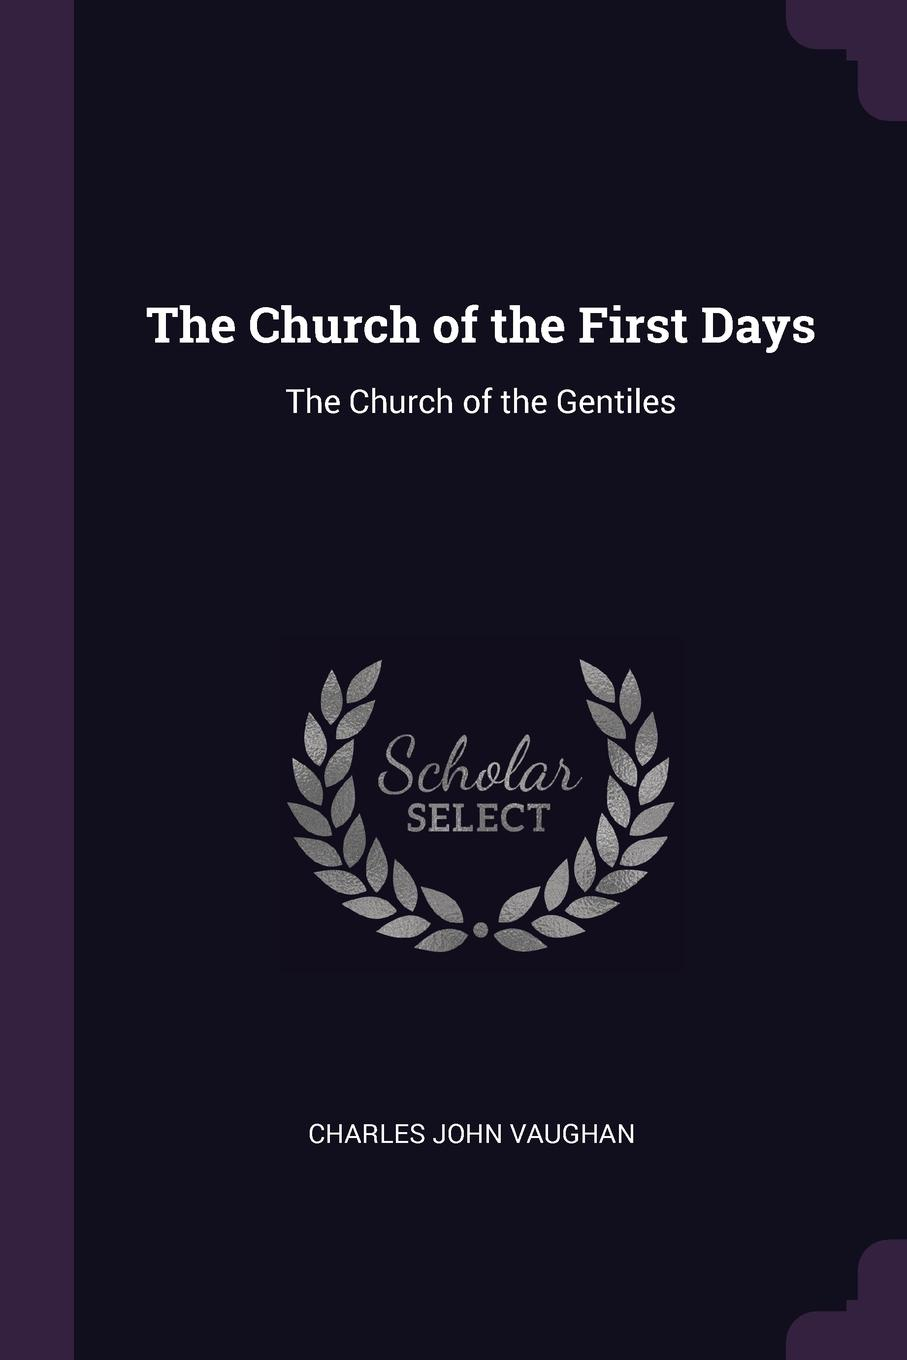 Charles John Vaughan The Church of the First Days. Gentiles